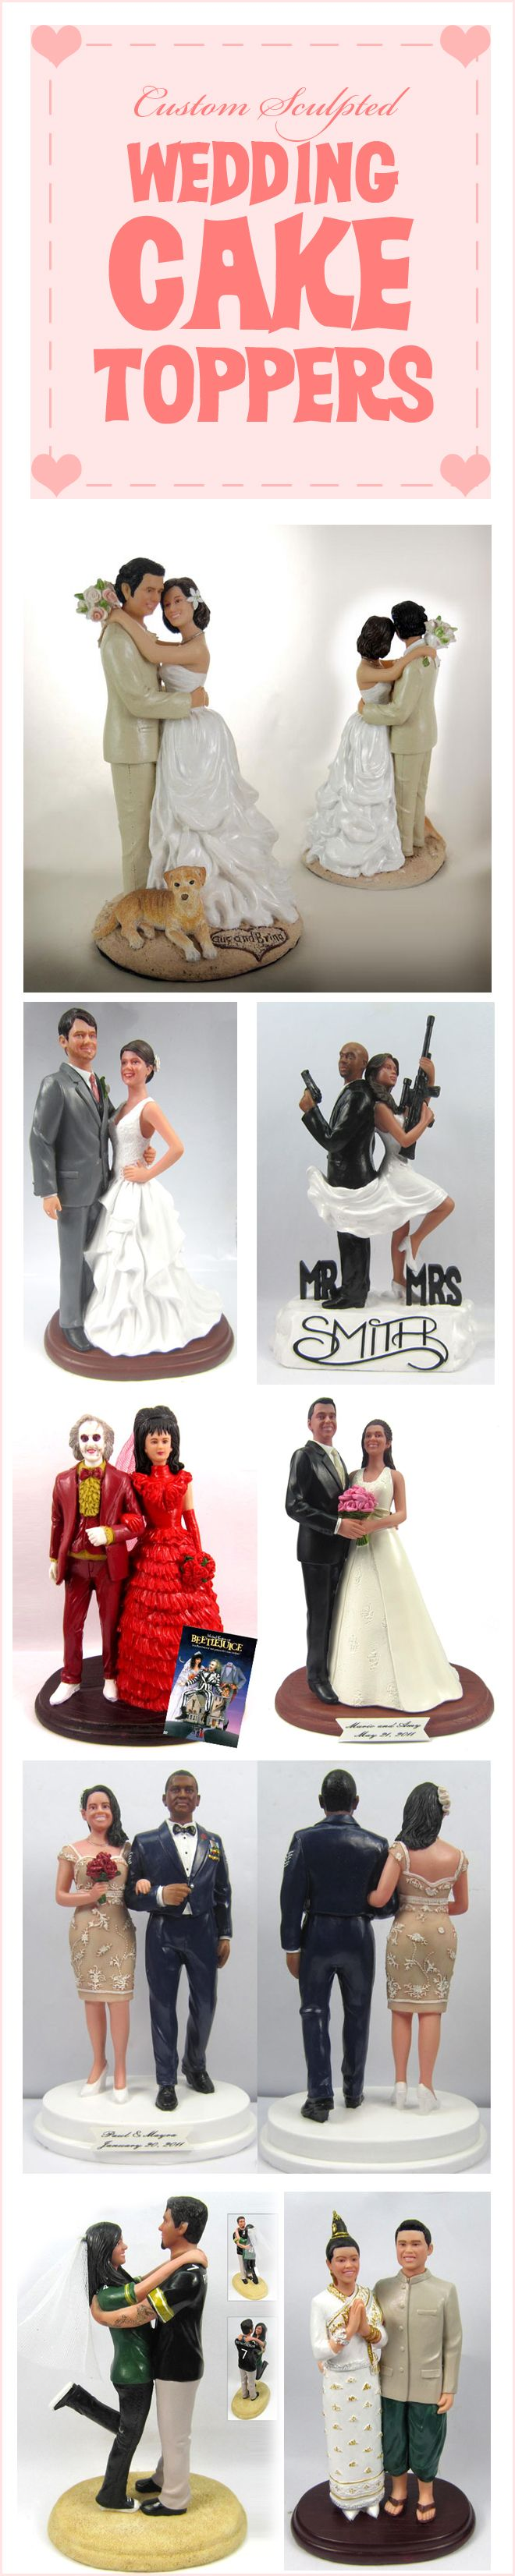 42 best Wedding Cakes images on Pinterest